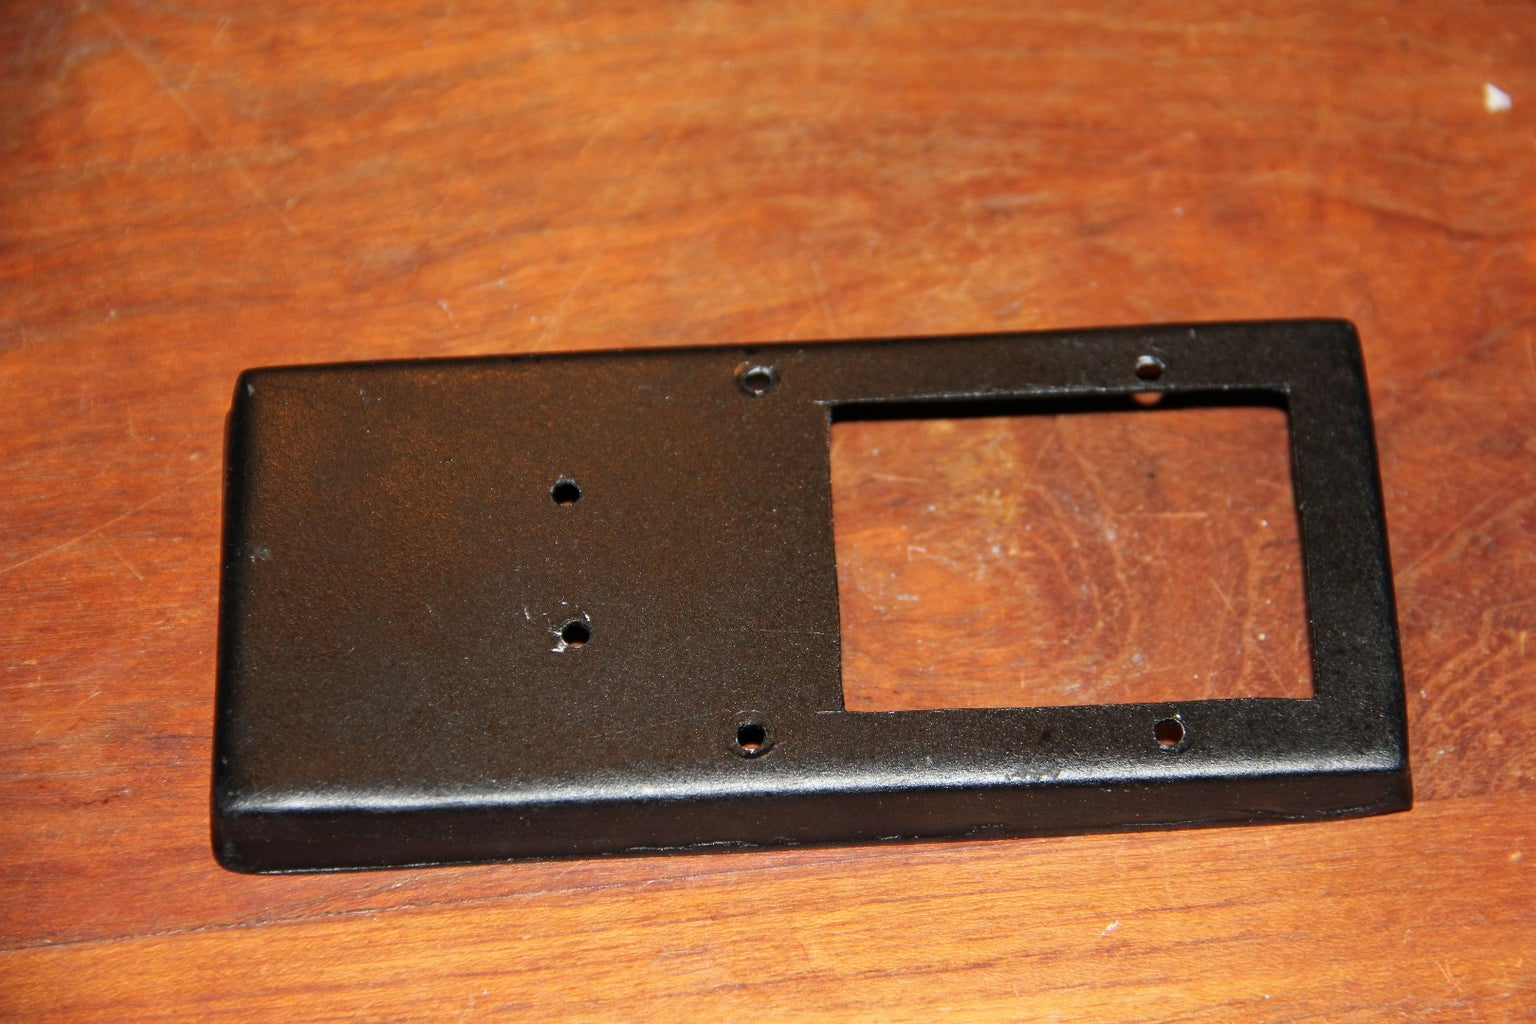 Preparing the Vacuum Formed Battery Tray (Optional)